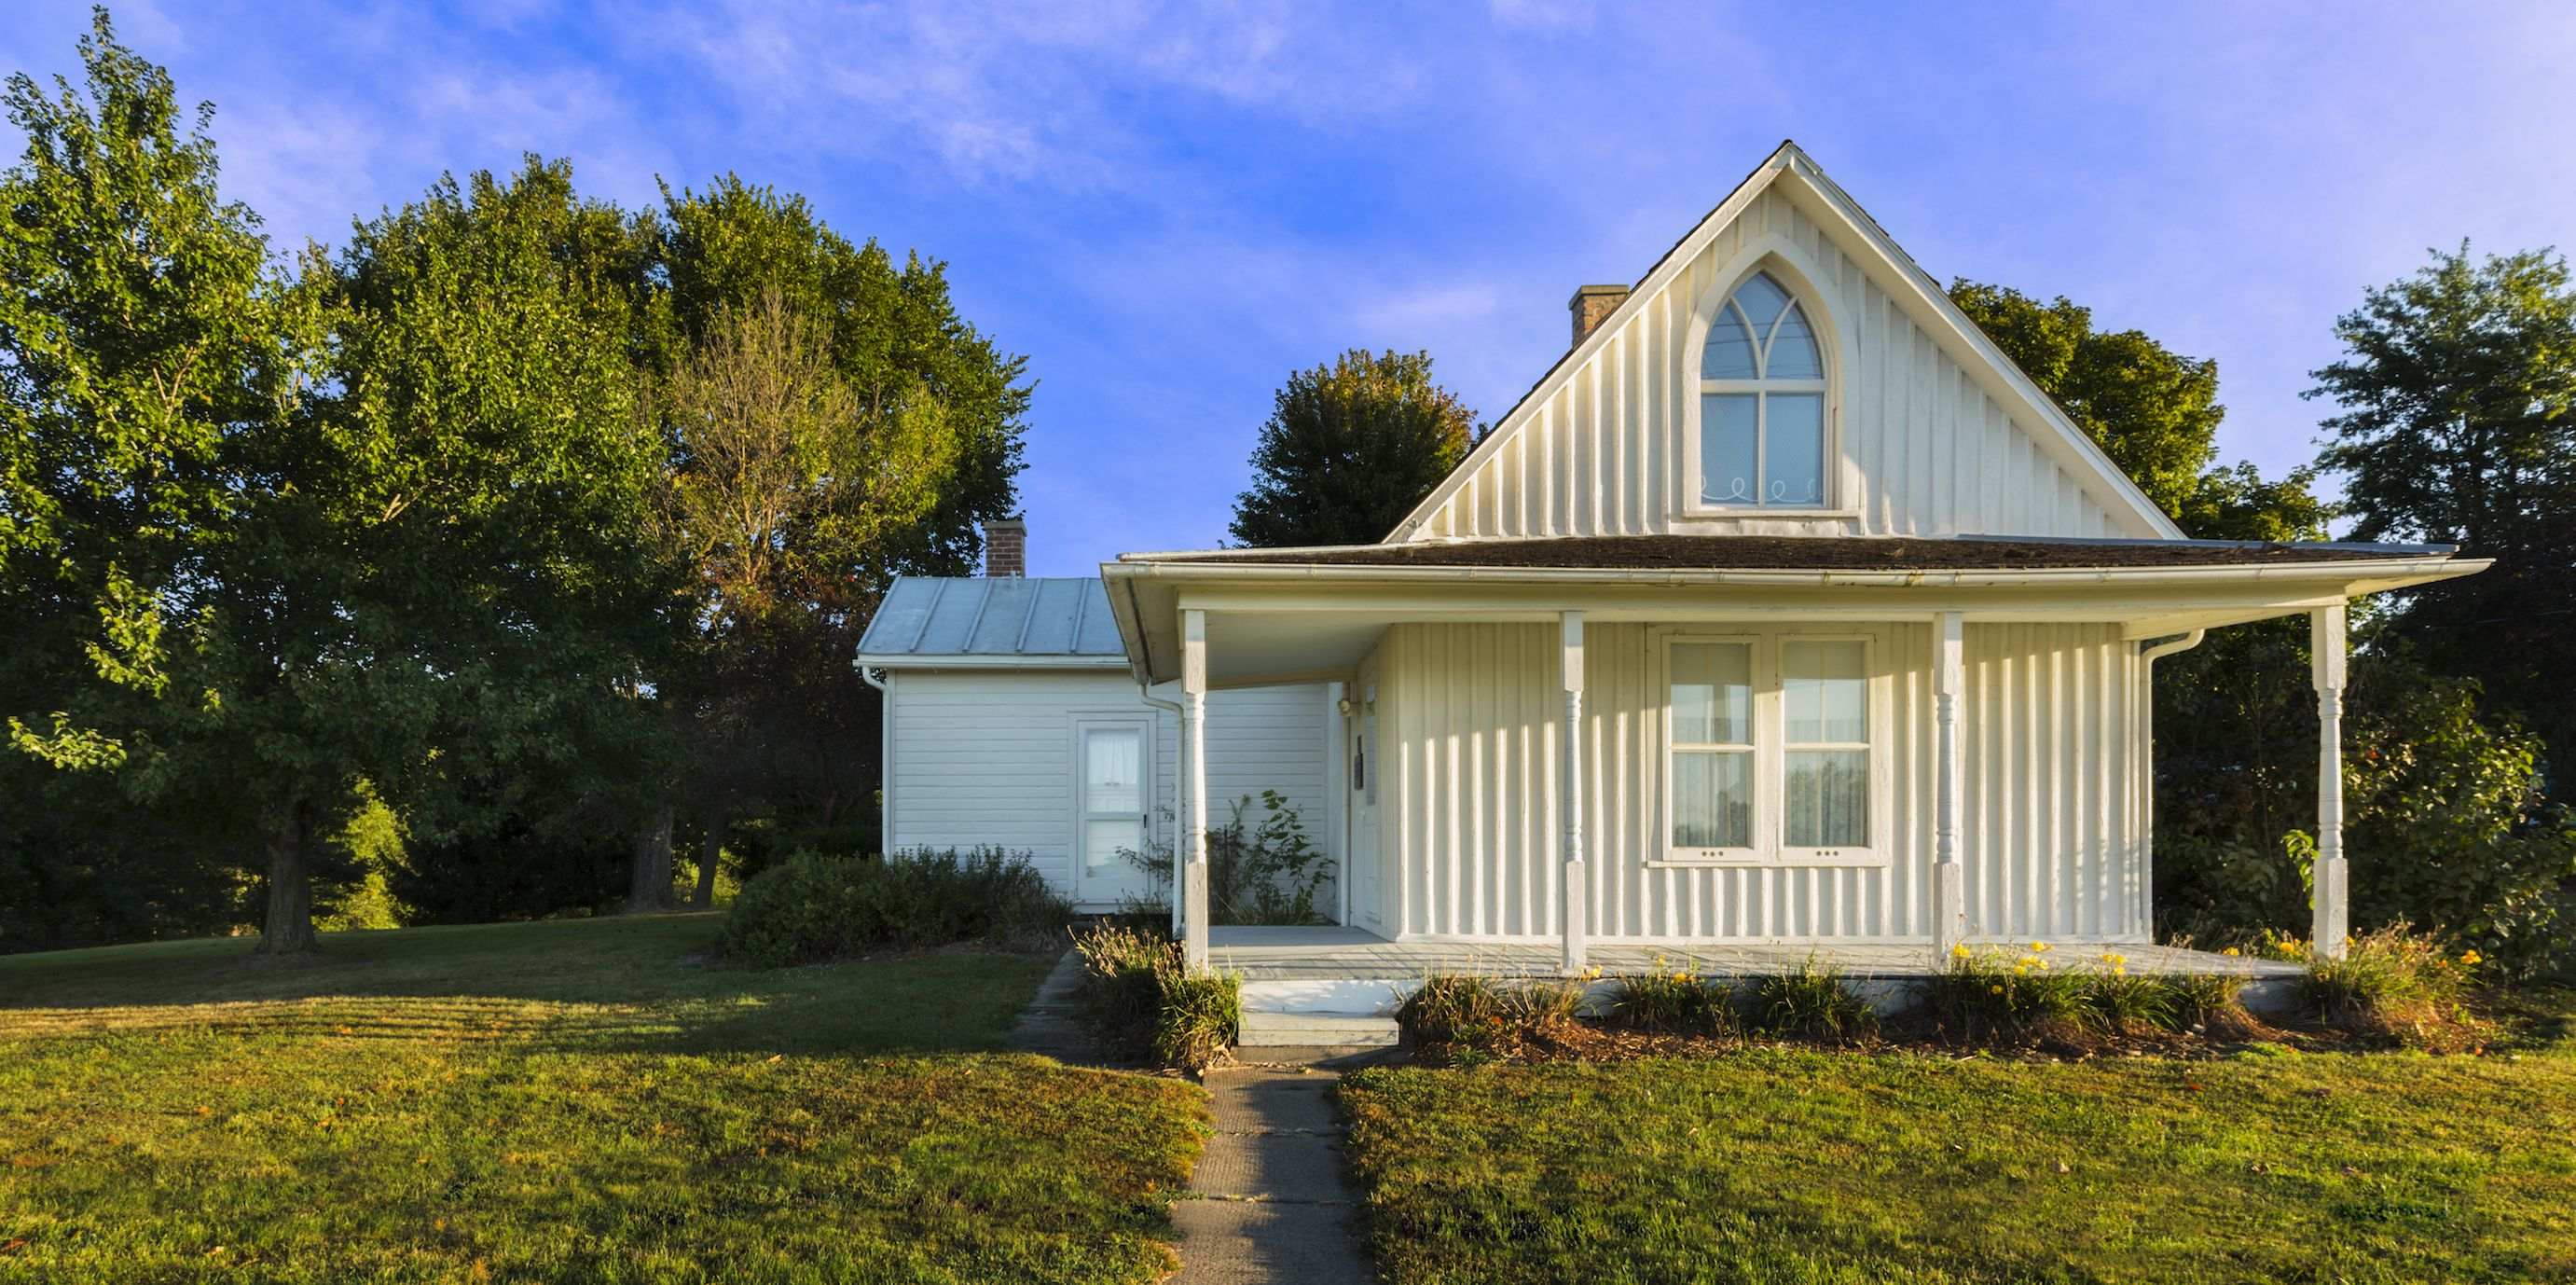 Different Styles Of Houses Found Across The United States